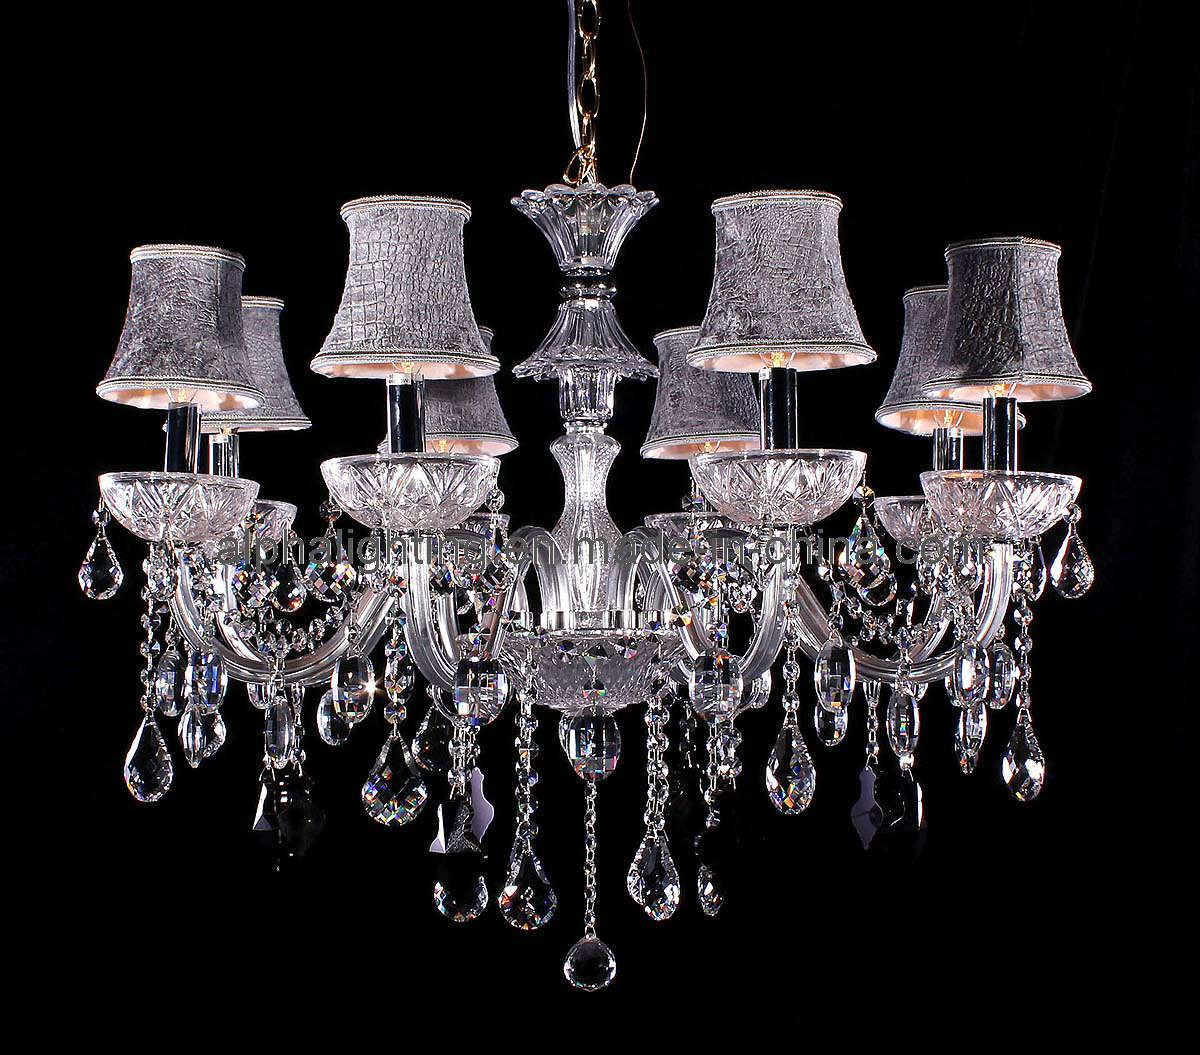 Pics s Chandelier Modern Crystal China